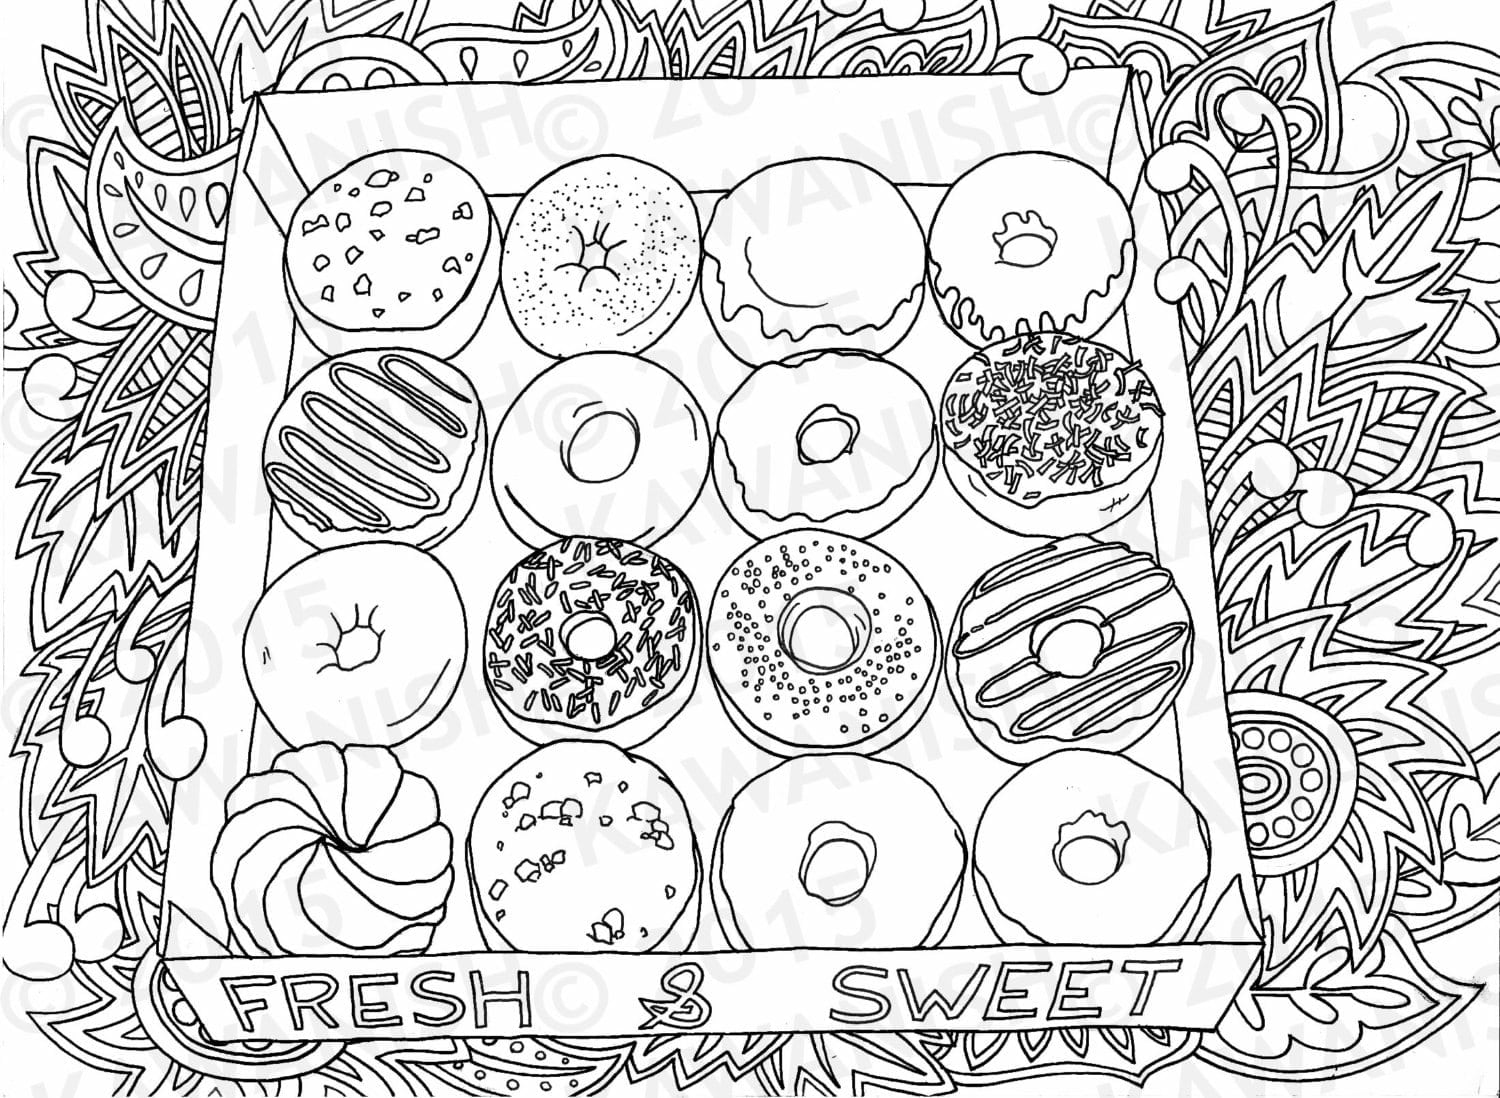 Donuts Doughnuts Adult Coloring Page Gift Wall Art By Kawanish New